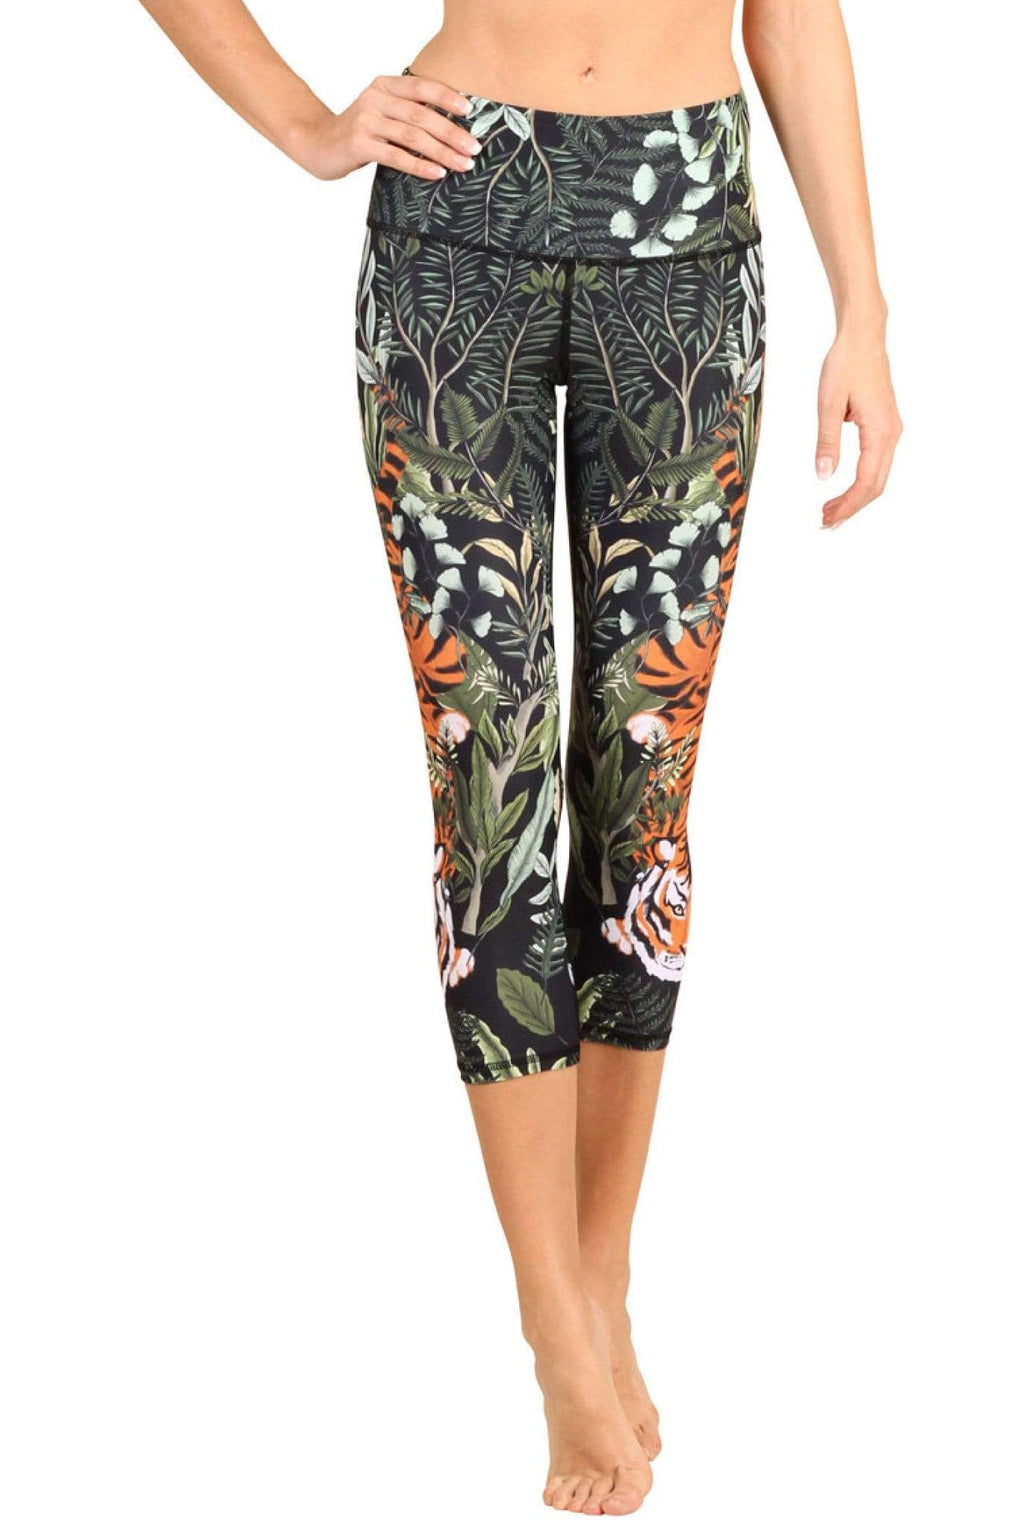 Yoga Democracy Leggings Rawr Talent Printed Yoga Crops